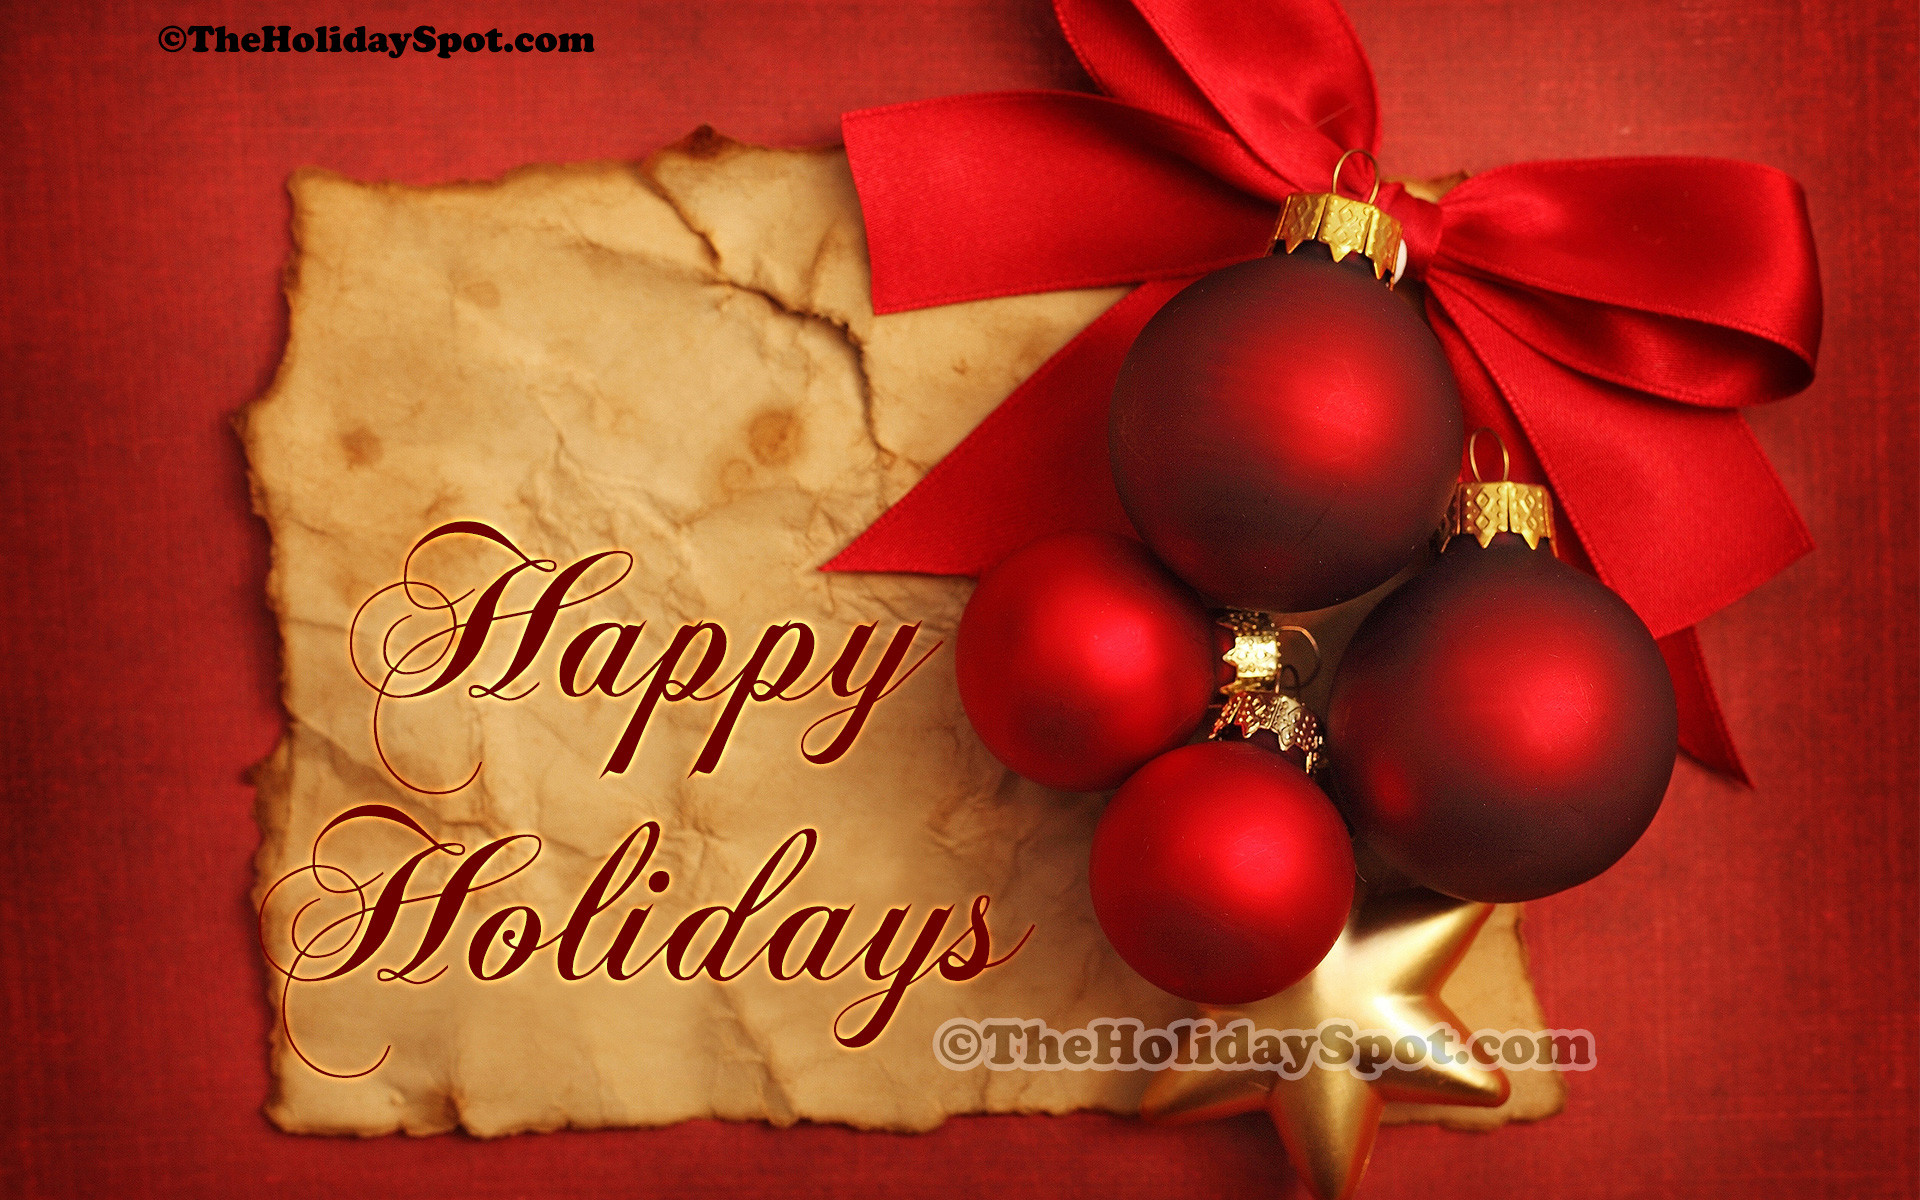 A High Definition christmas wallpaper wishing Happy Holidays on the  occasion of Christmas.